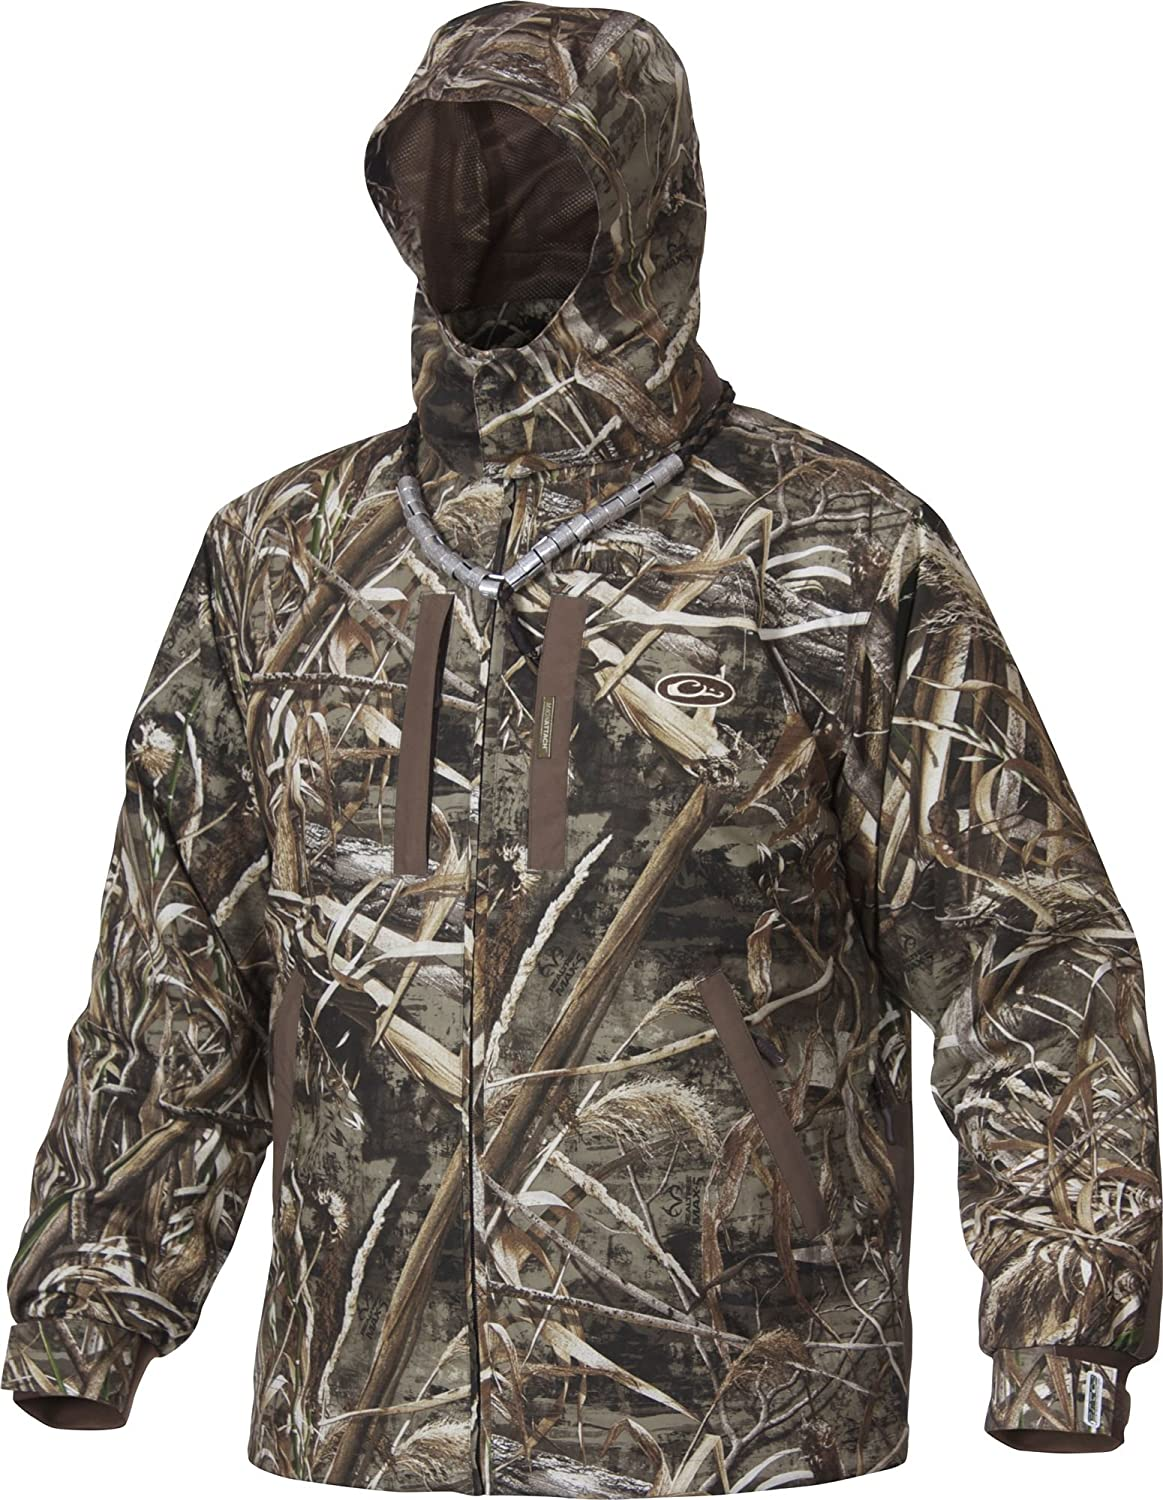 c707528129717 Amazon.com: Drake Men's EST Heat-Escape Waterproof Full Zip 2.0 Jacket  Polyester: Sports & Outdoors